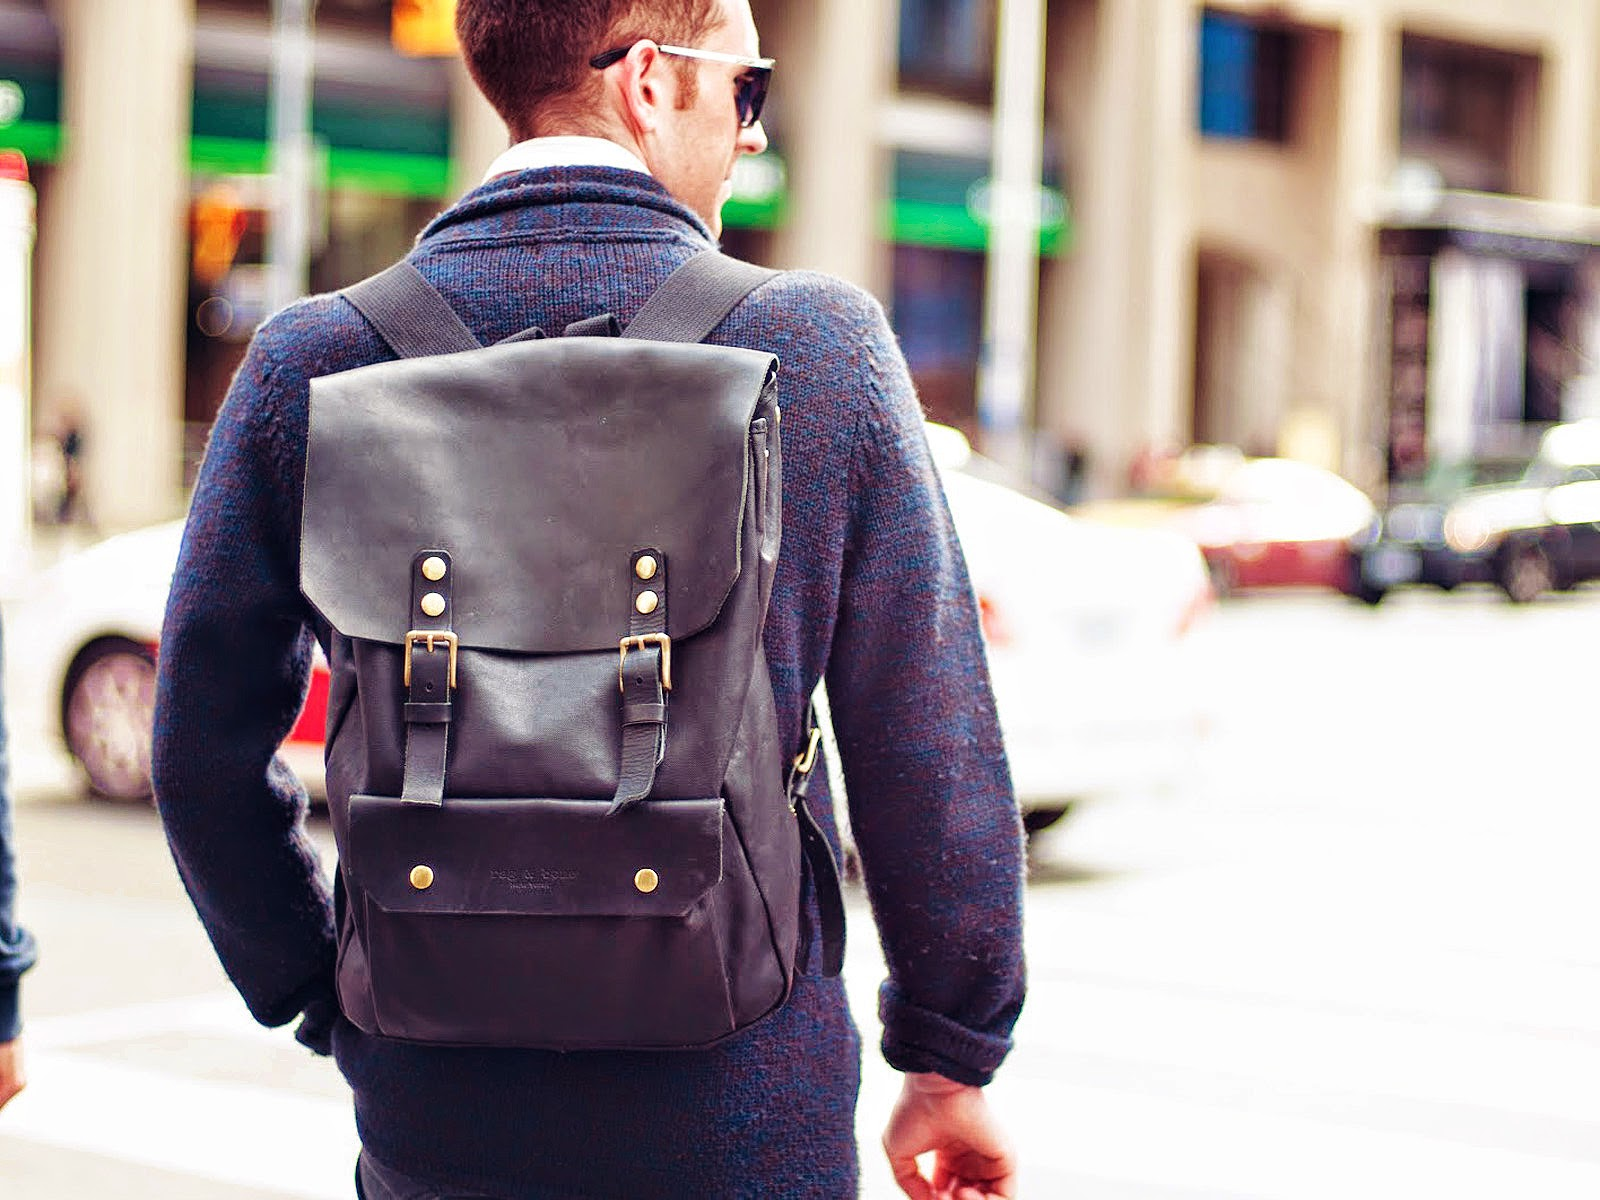 Types of bags: Backpack - Tipos de carteras: Mochila